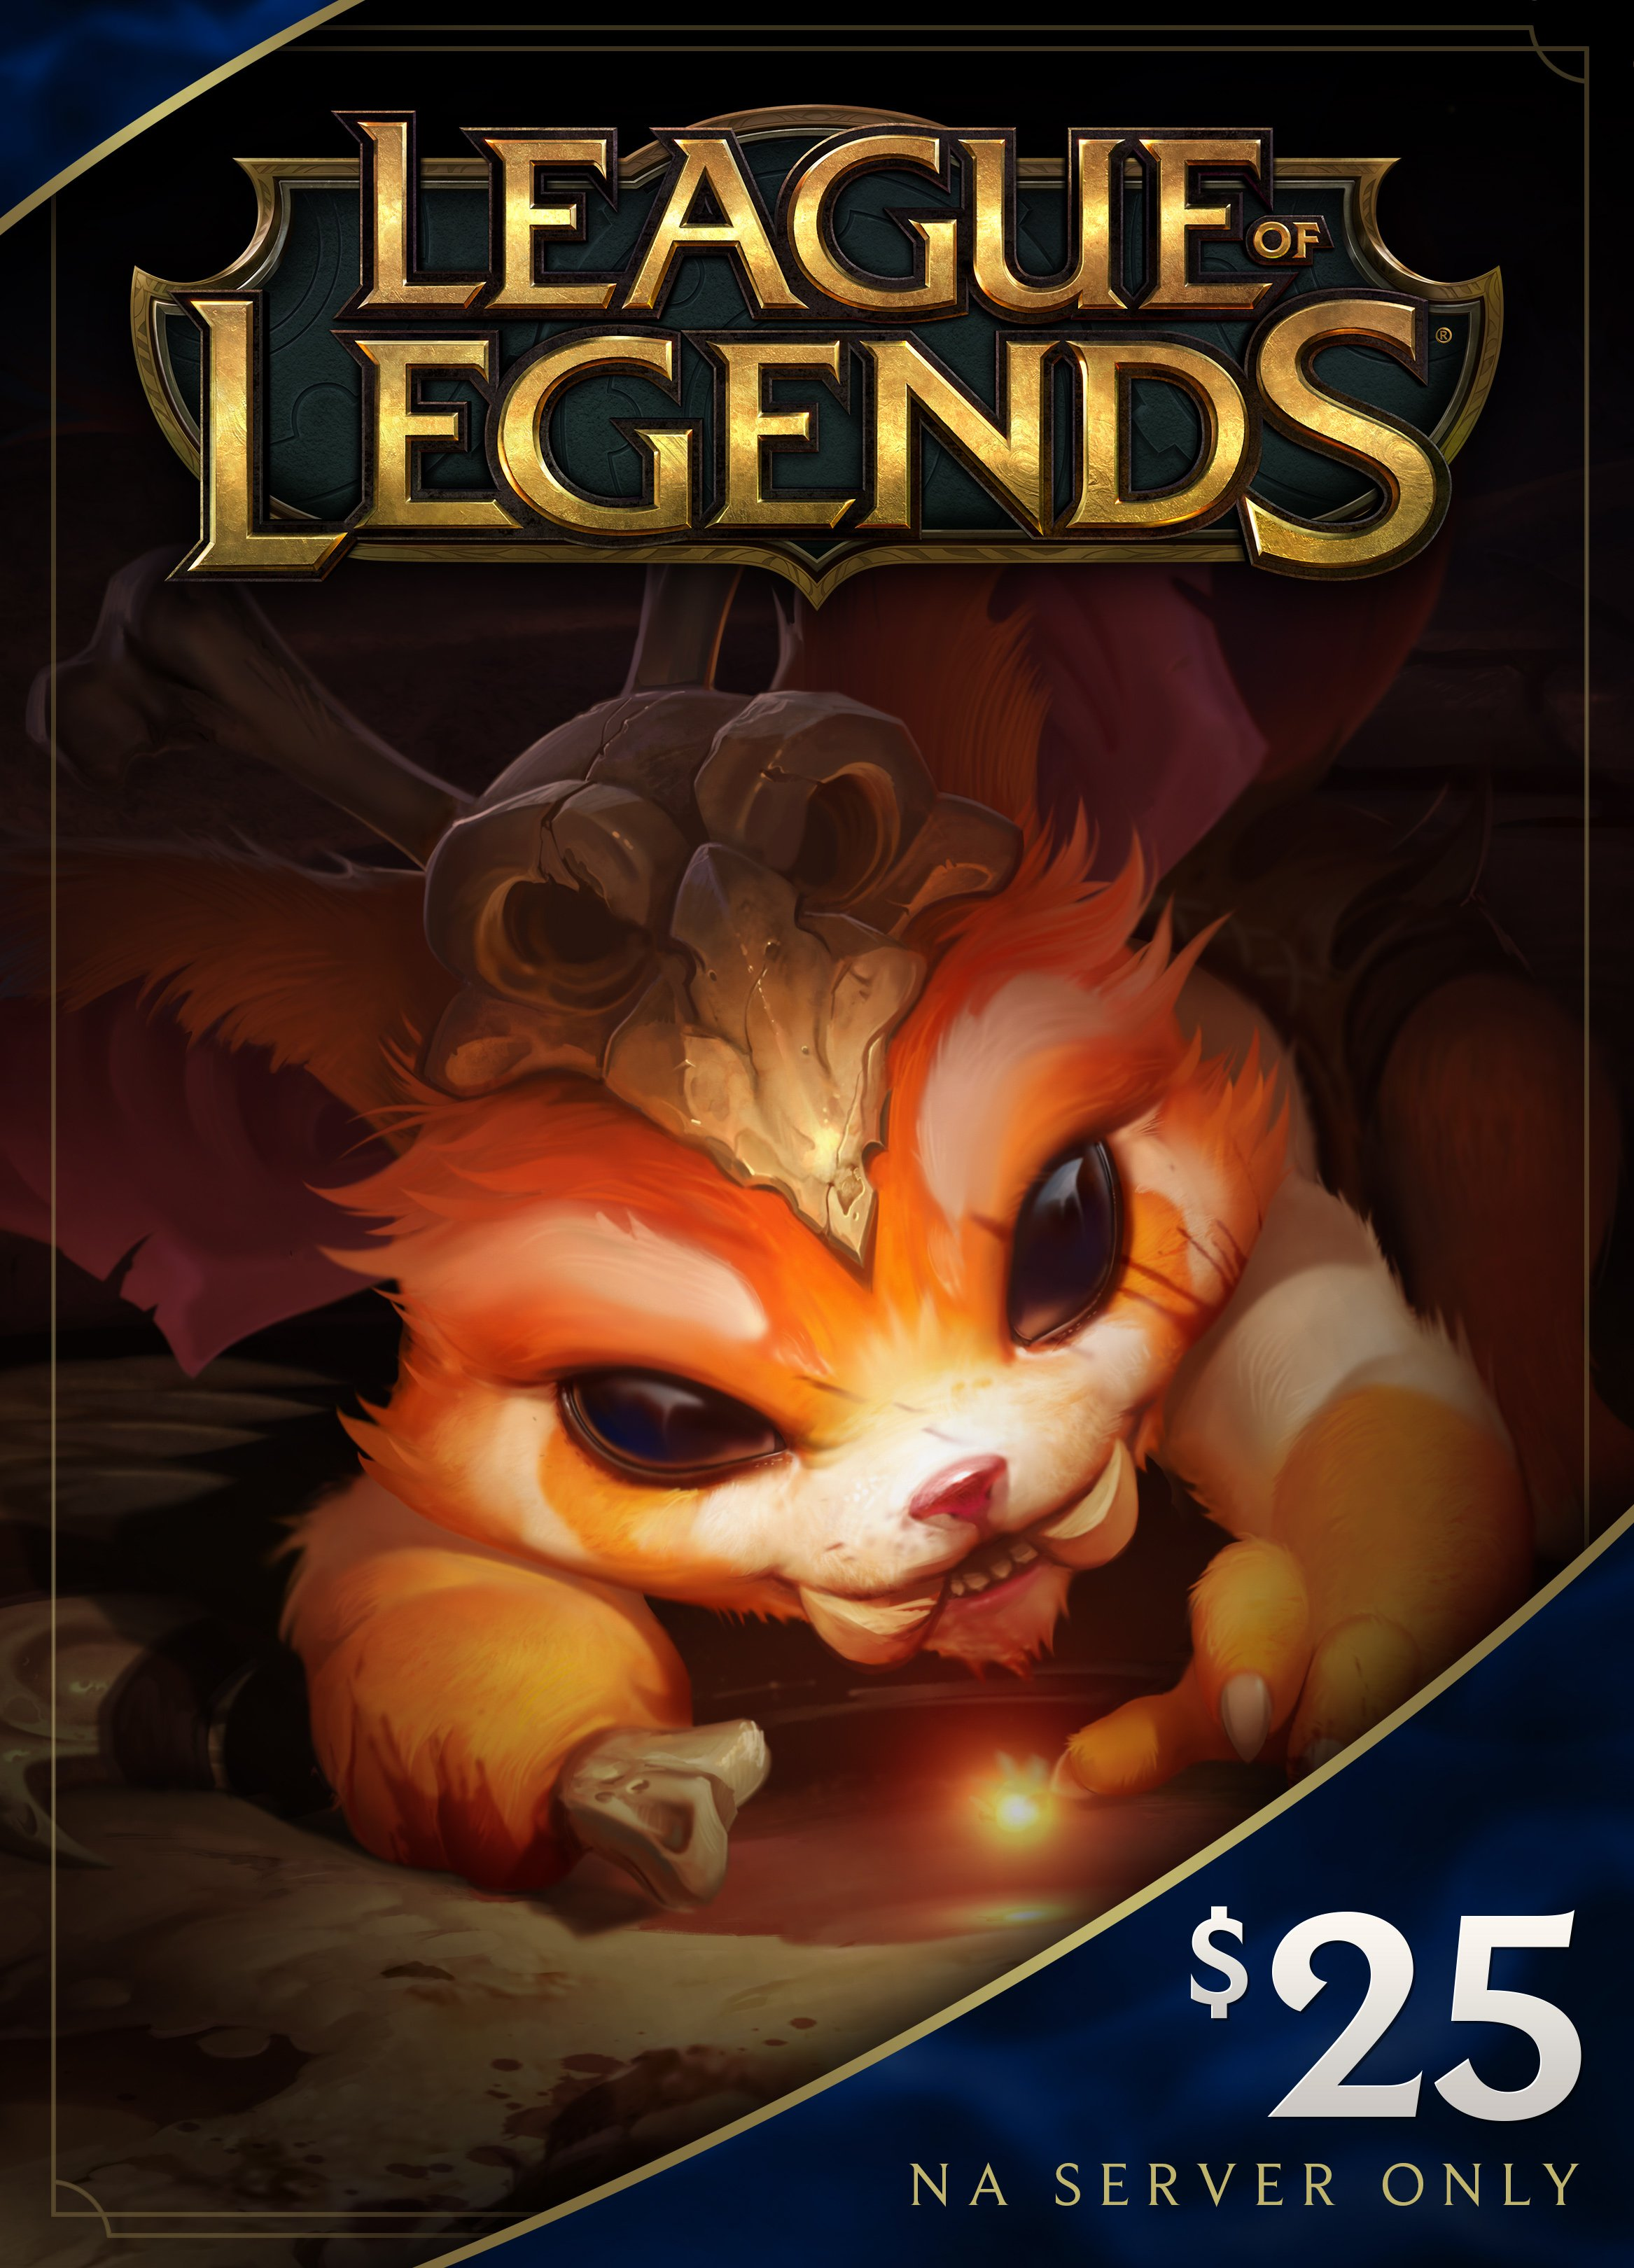 League of Legends $25 Gift Card - 3500 Riot Points - NA...